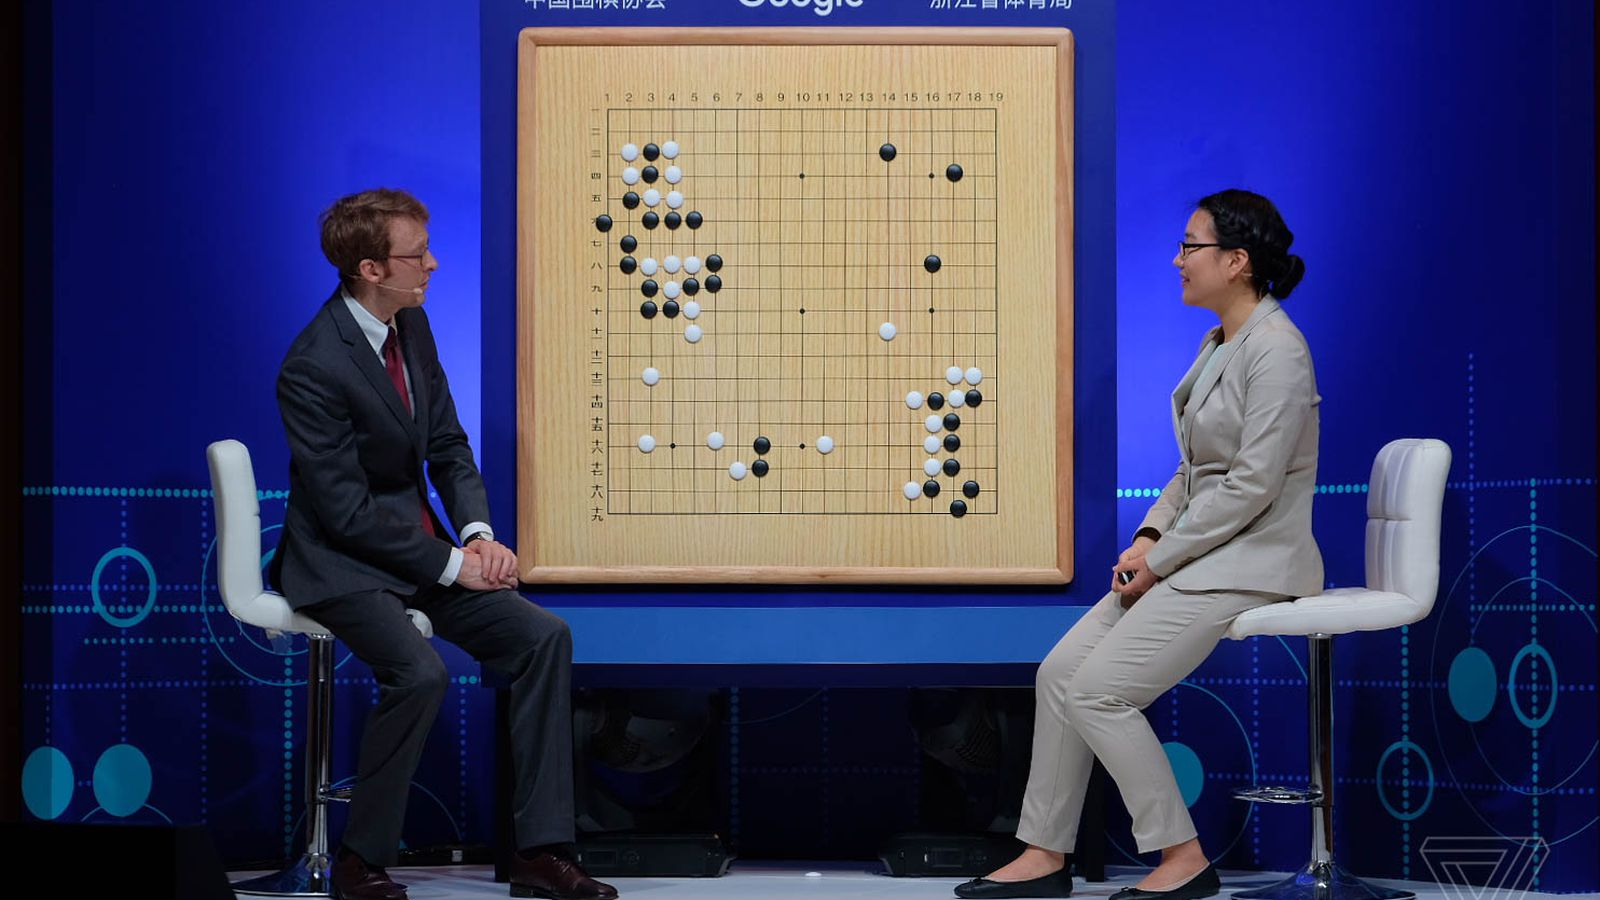 Google's AlphaGo AI defeats world Go number one Ke Jie